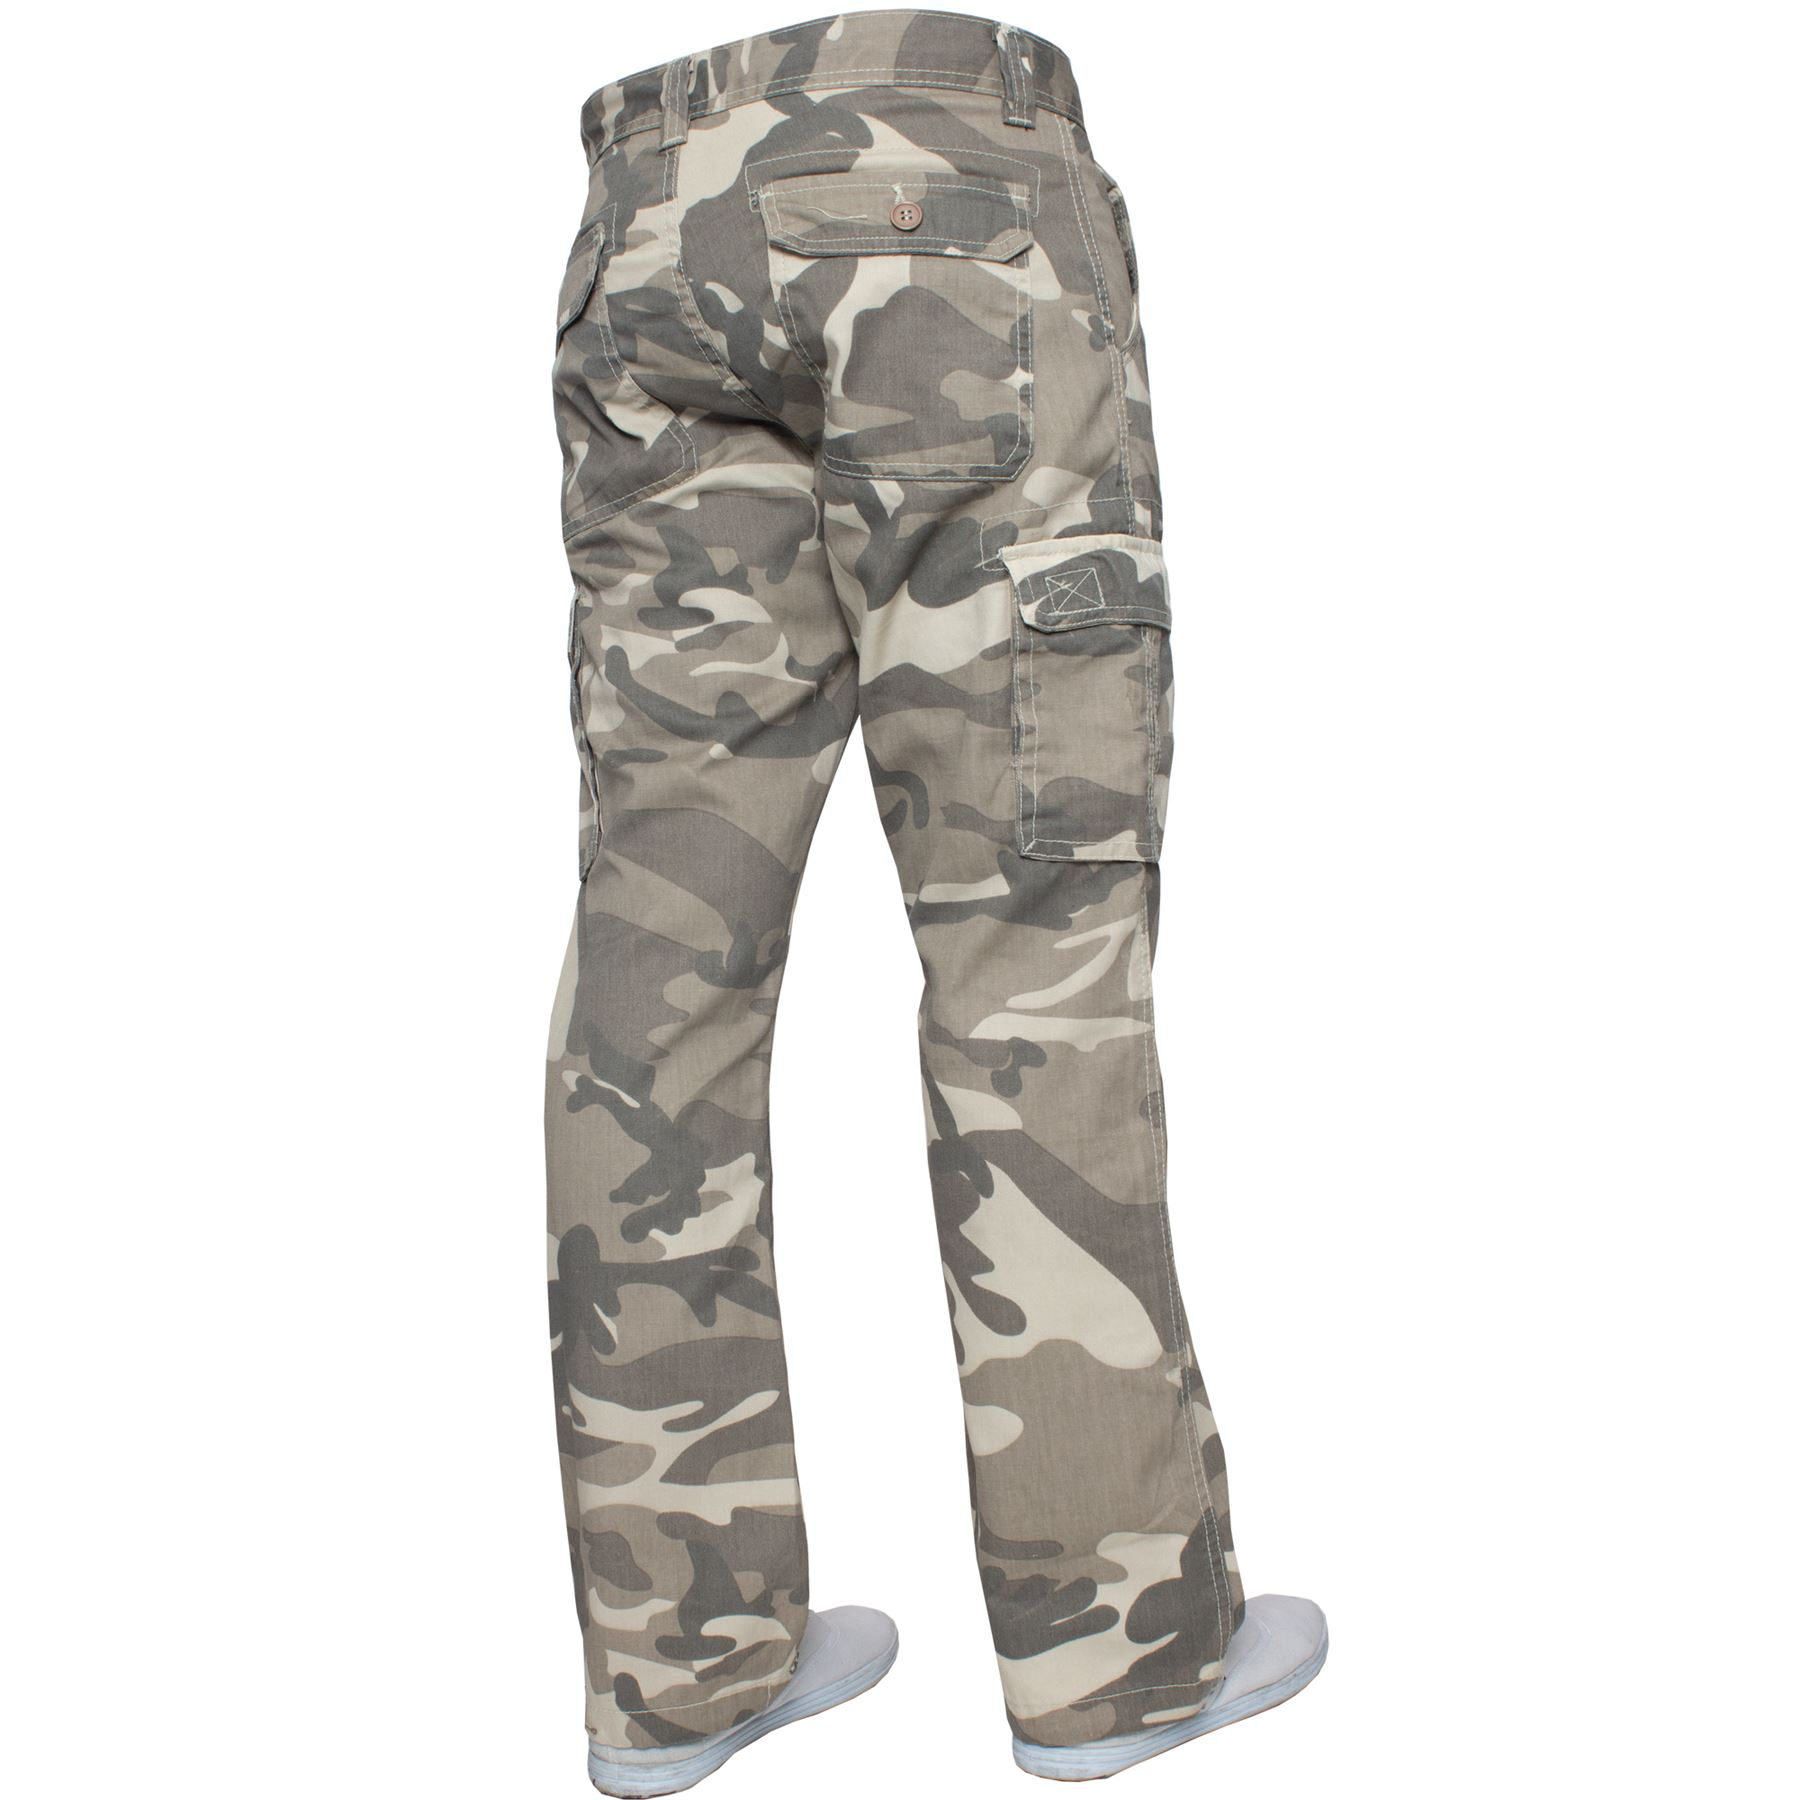 Kruze-Mens-Military-Combat-Trousers-Camouflage-Cargo-Camo-Army-Casual-Work-Pants miniatura 4